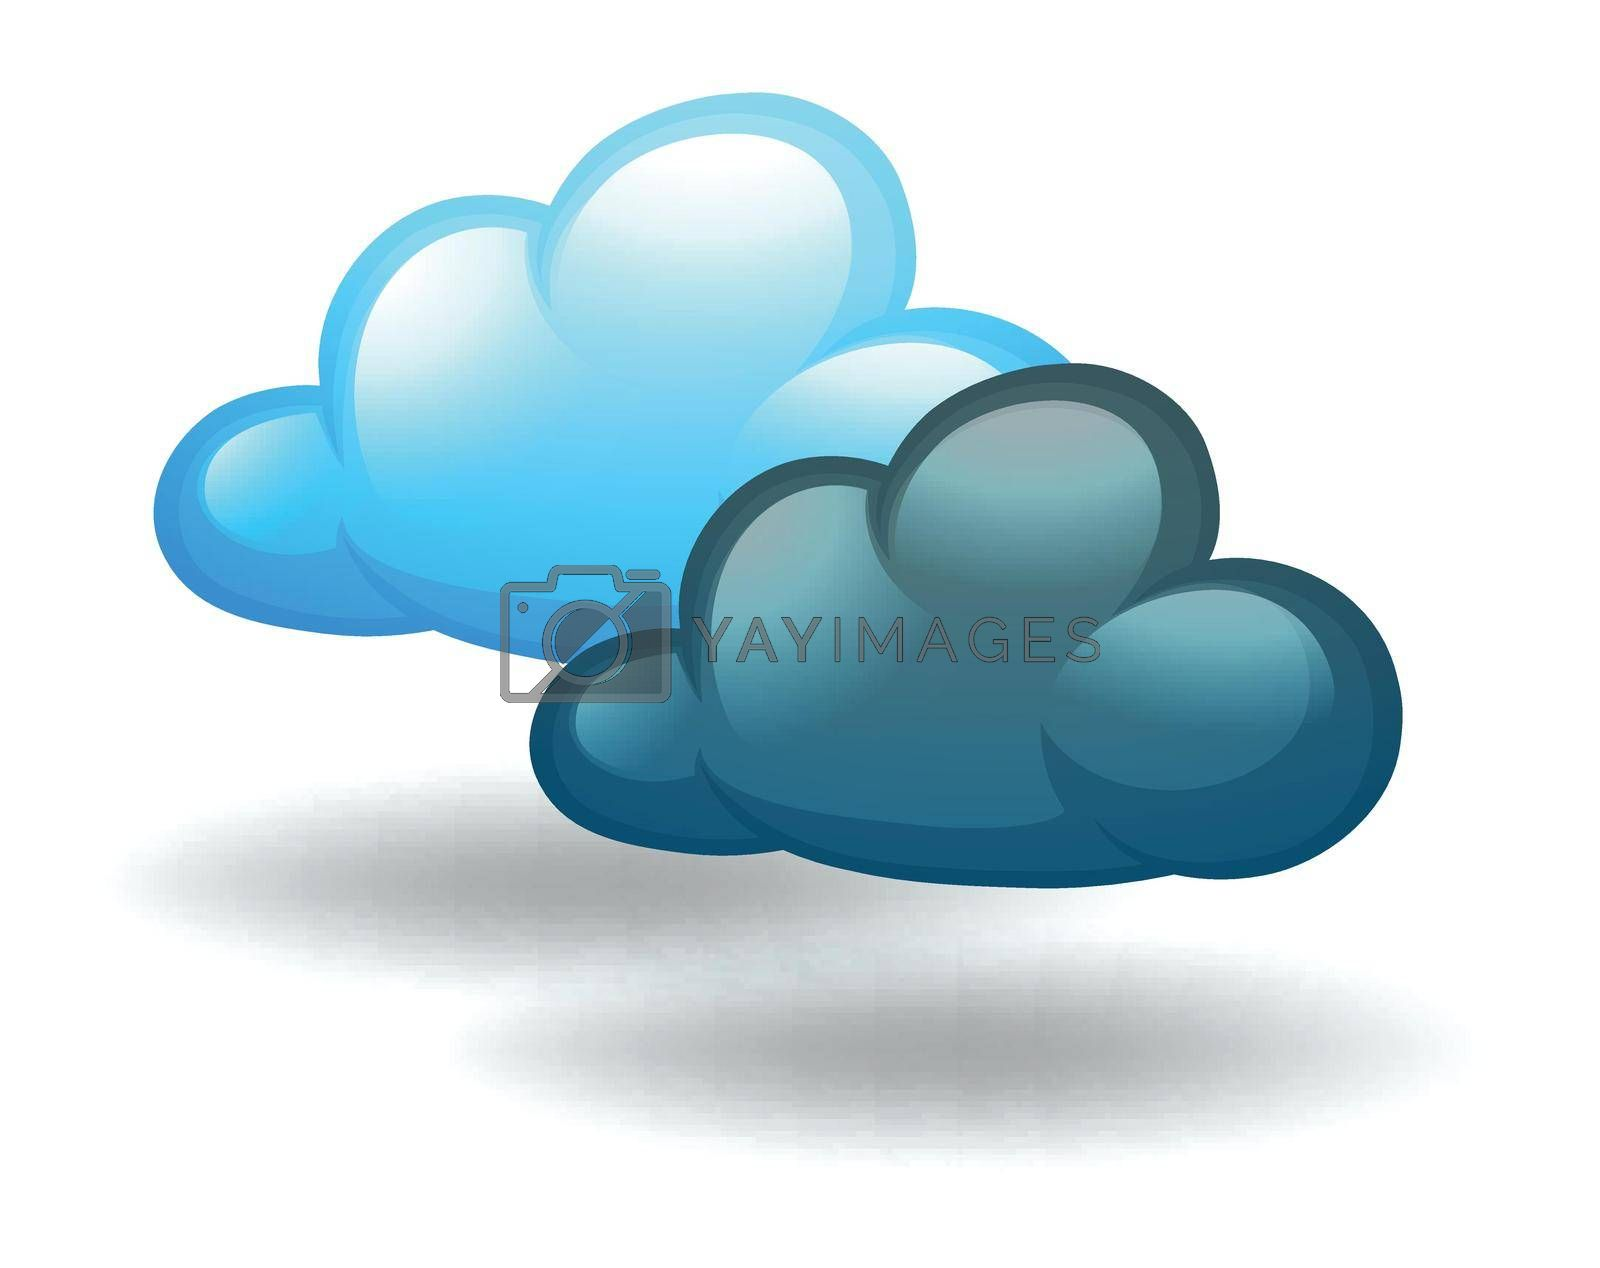 Royalty free image of Cloudy weather by iimages